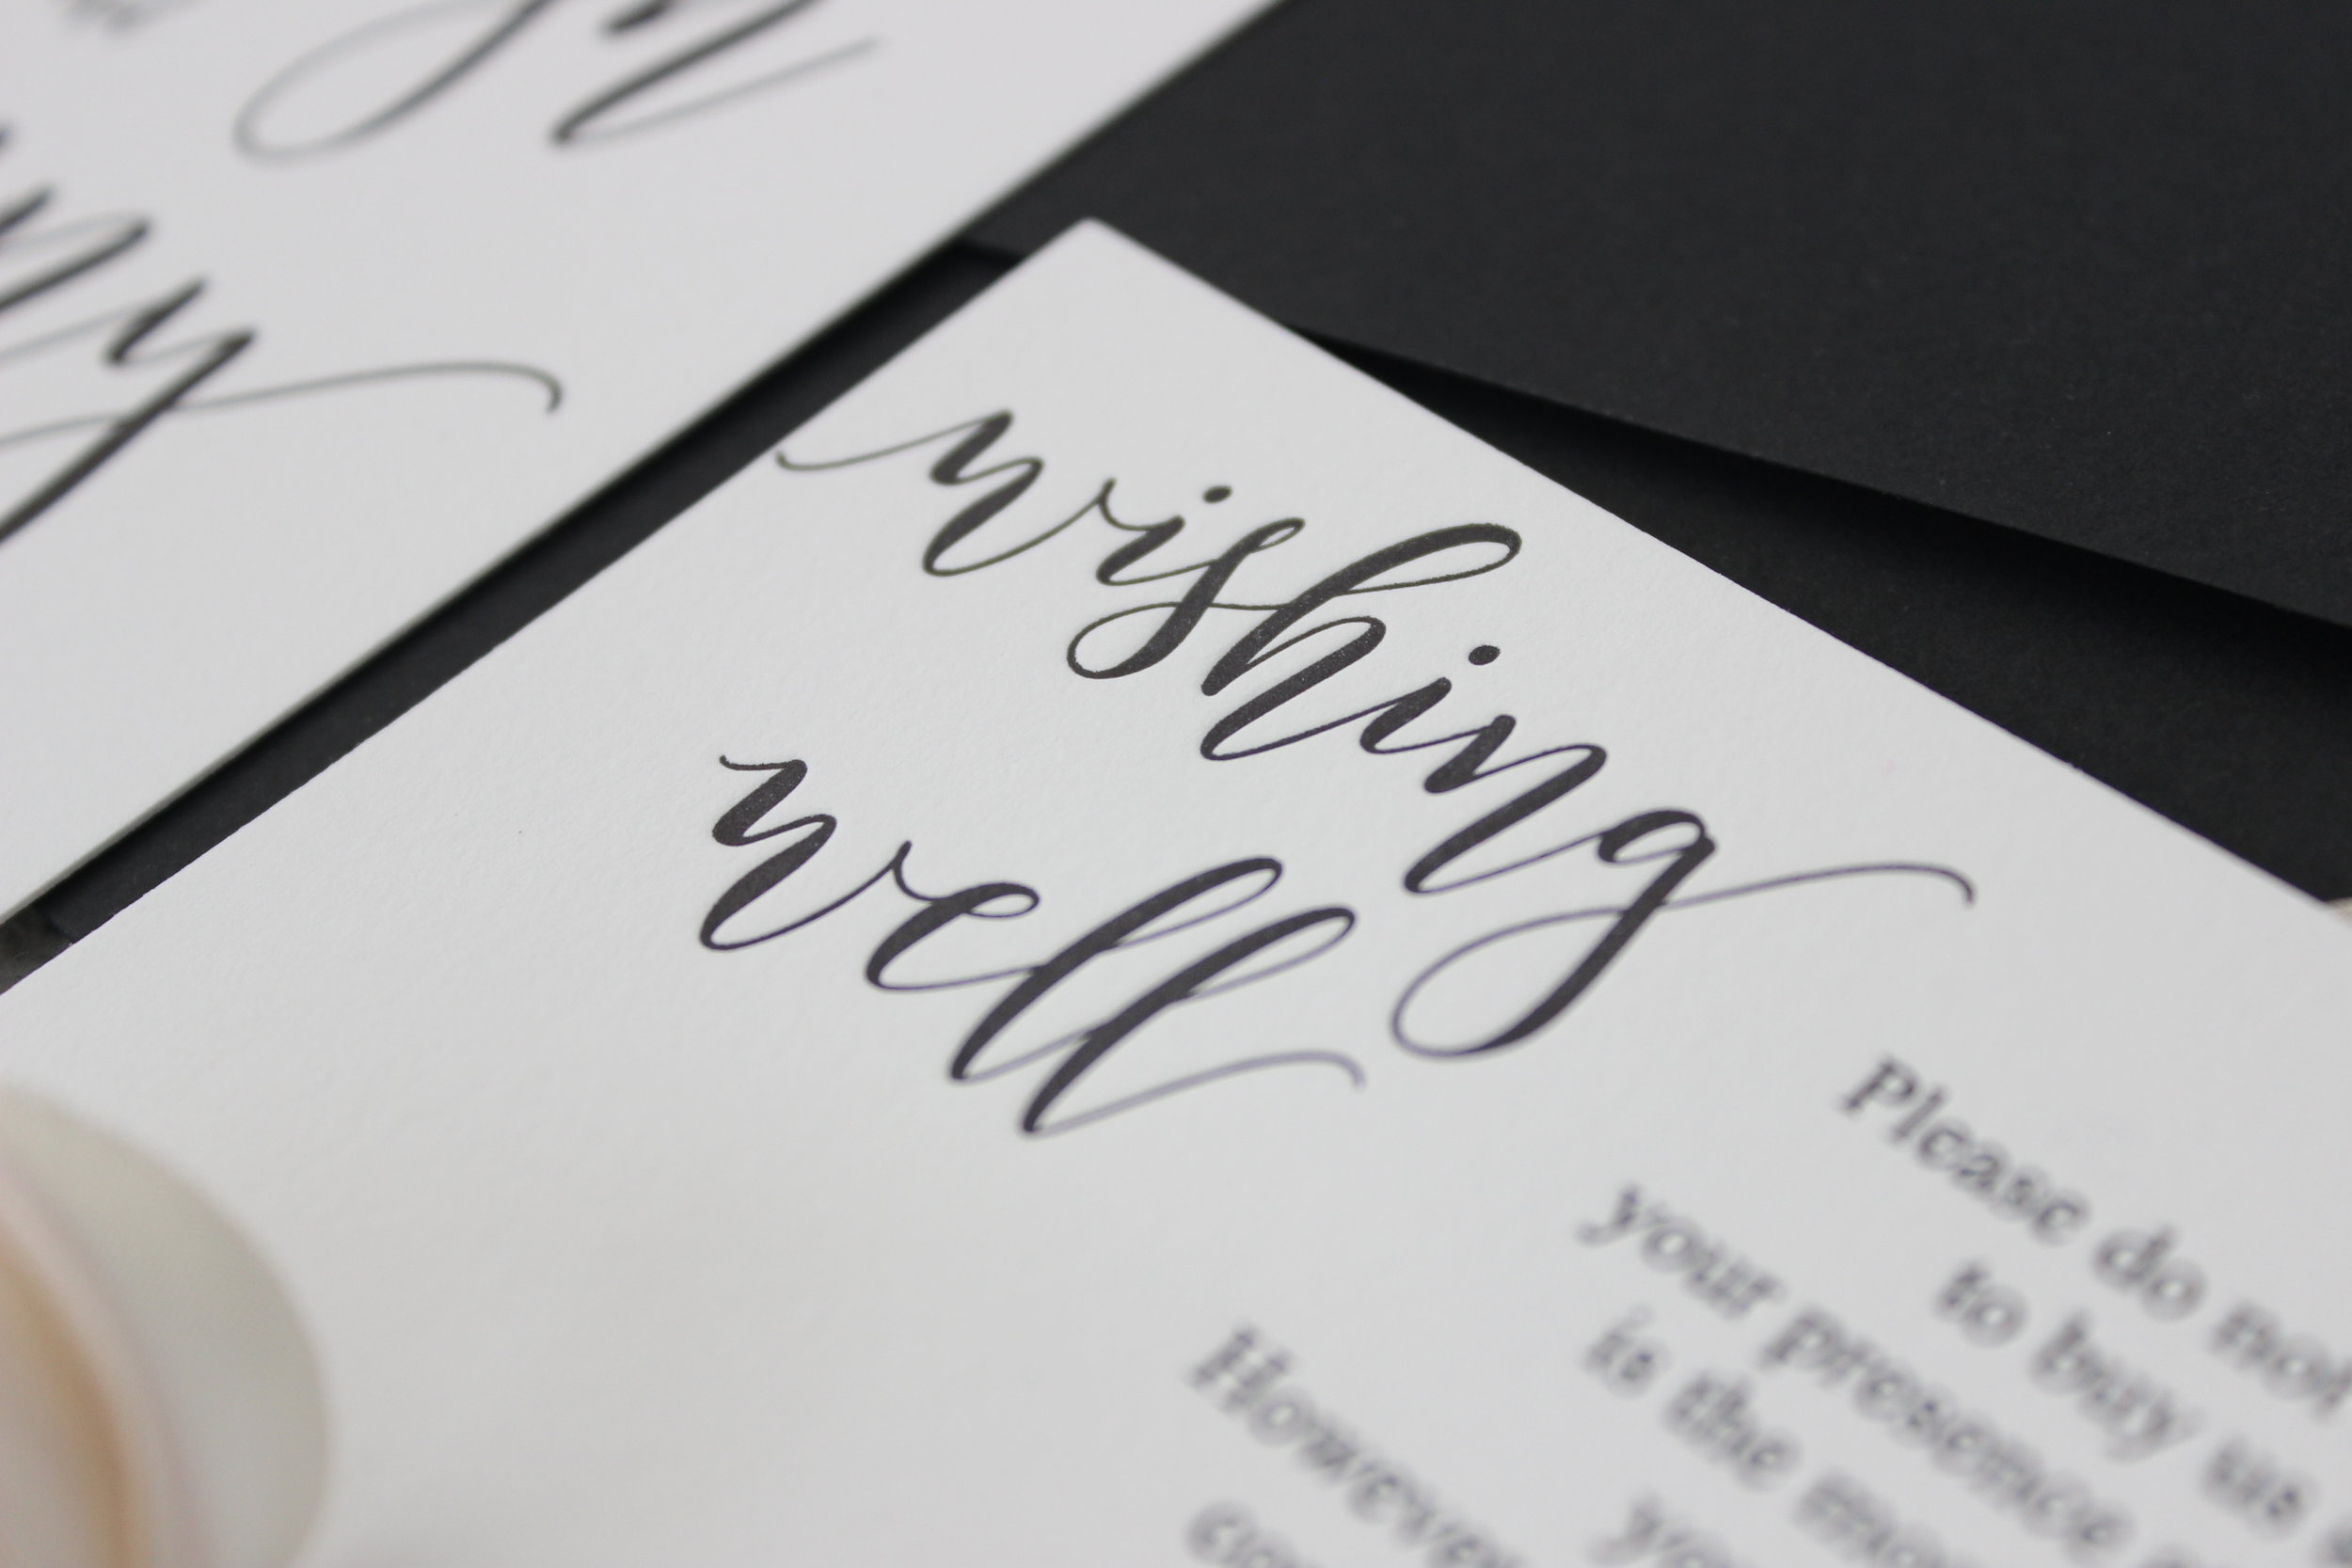 - Letterpress print creates a timeless design to accompany any occasion. This modern minimalist design brings simplicity to mind, and with it a sense of uninterrupted beauty.